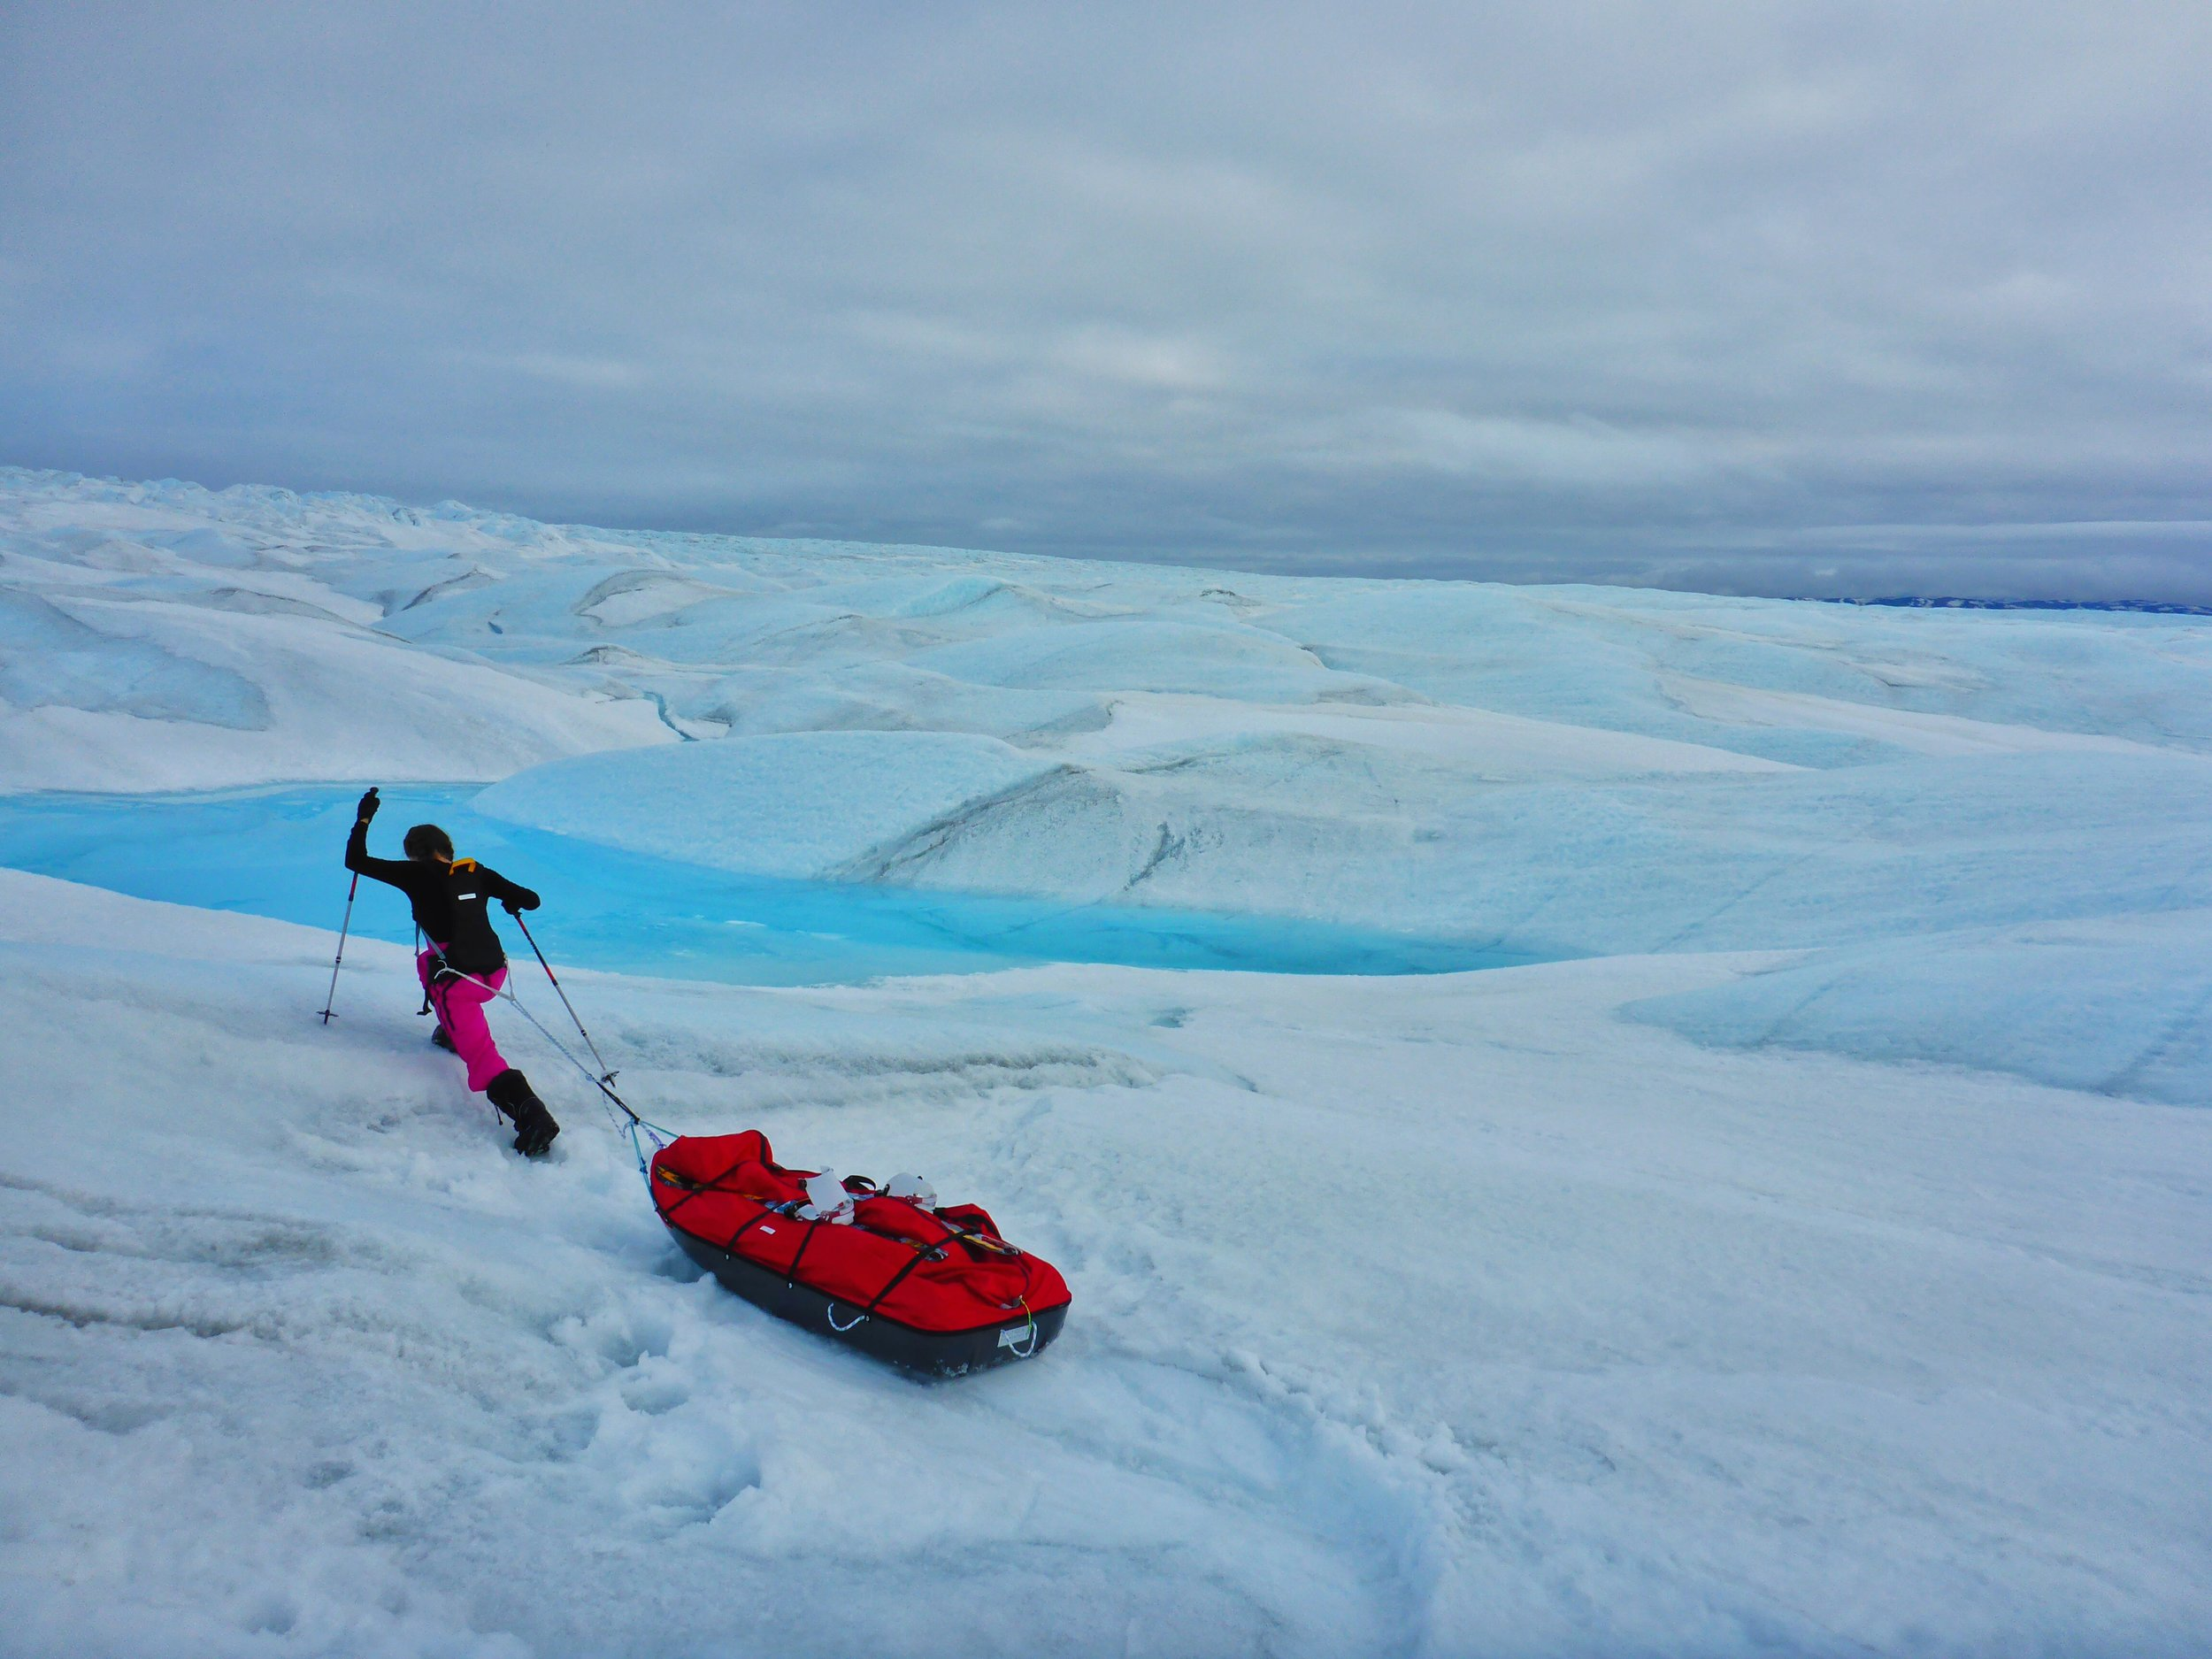 Jade's 500km Crossing of the Greenland Icecap, Aged 15